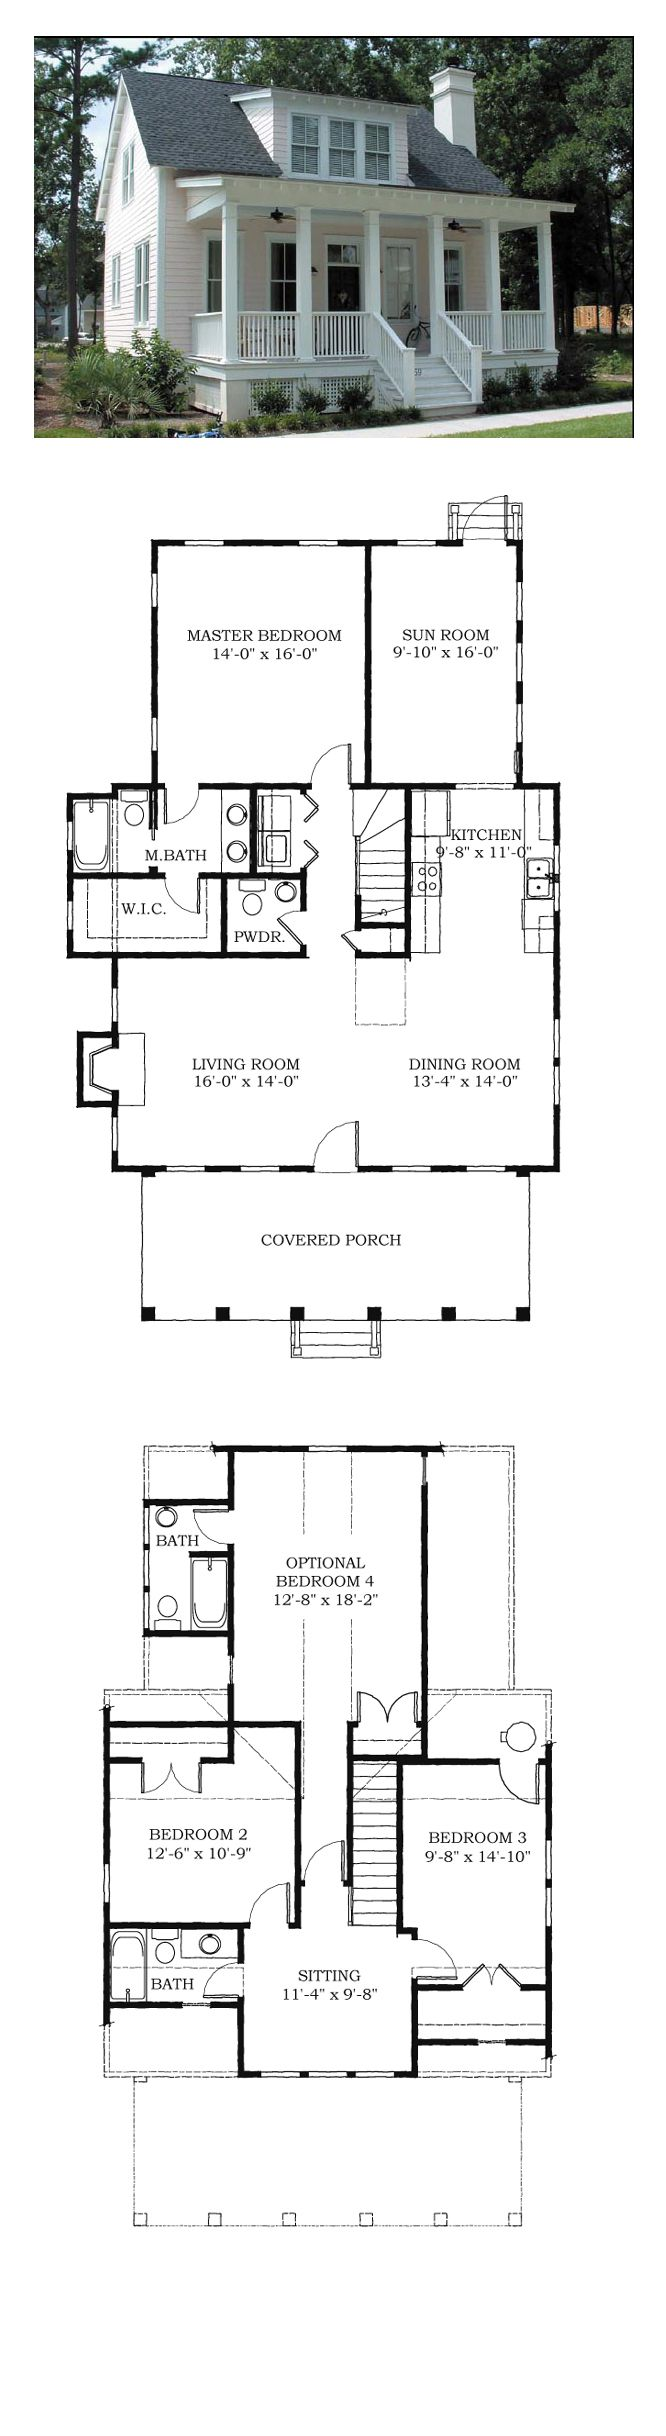 House Plan chp 38703   My Future Home   Pinterest   Bedrooms  House     House Plan chp 38703   My Future Home   Pinterest   Bedrooms  House and  Small house plans